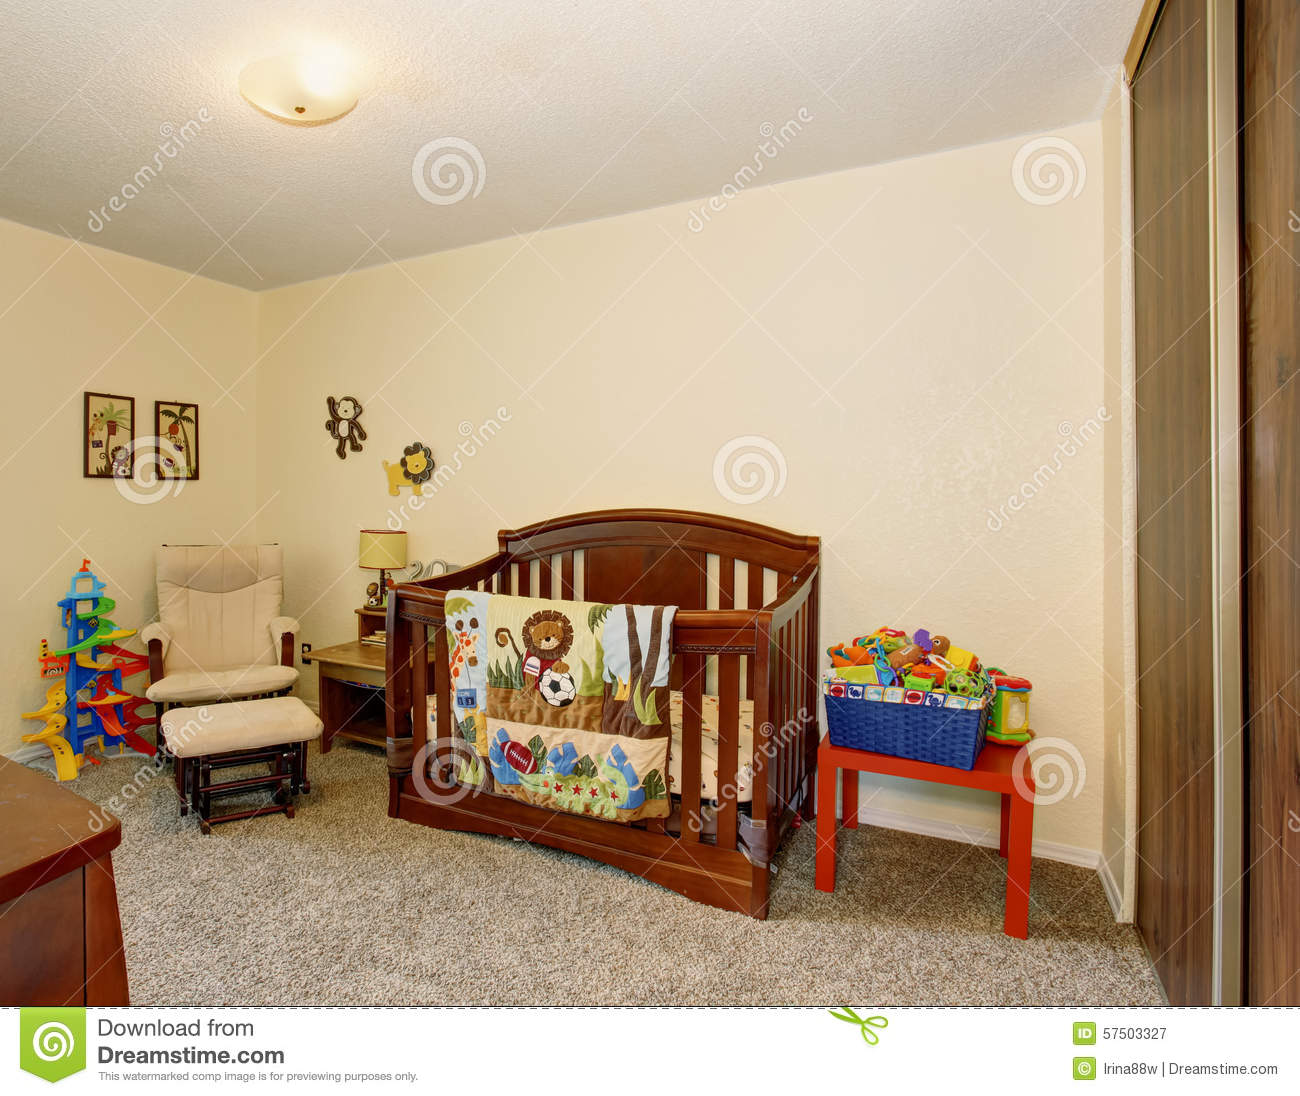 Perfect baby room with excellent wooden crib.